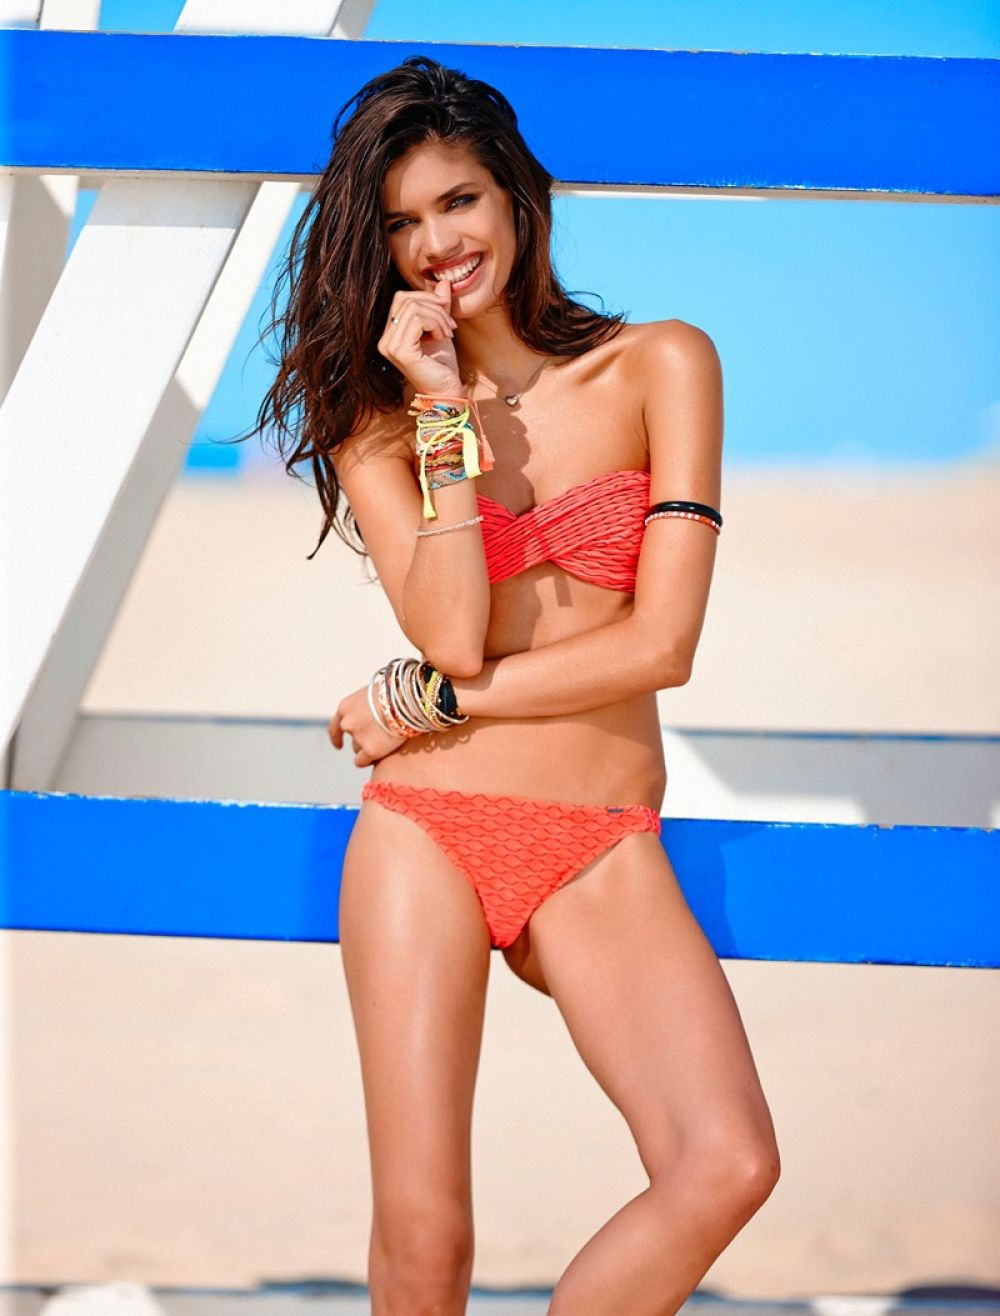 SARA SAMPAIO - Manana Moon 2015 Swimsuit Promos